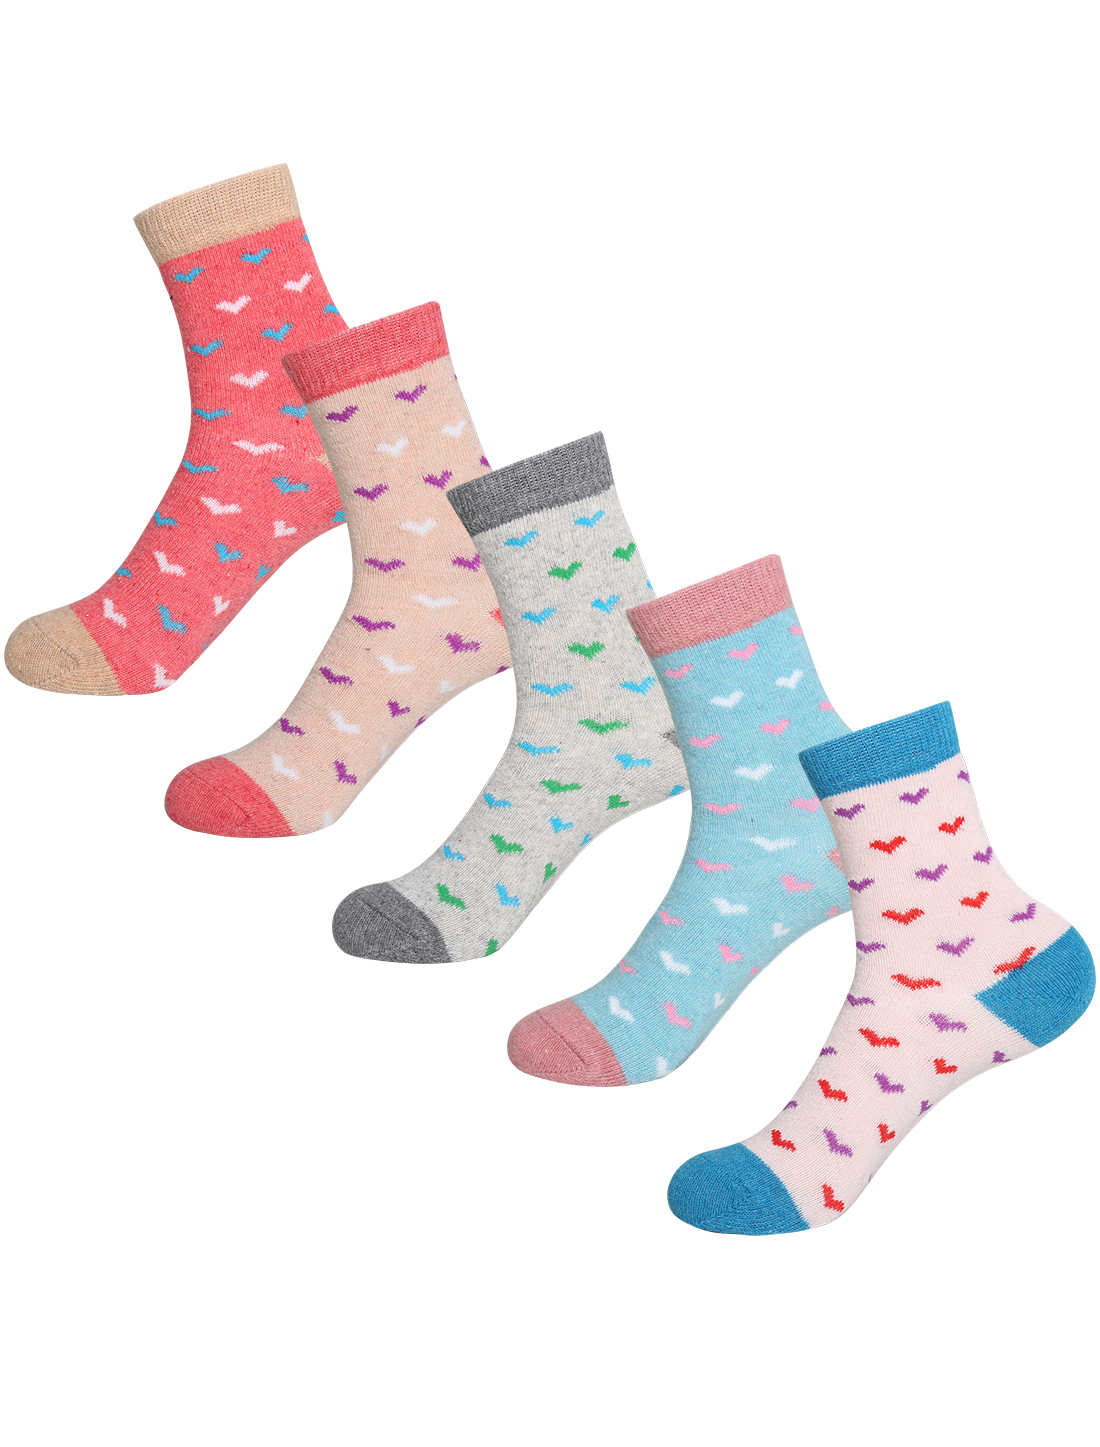 Women 5 Pack Hearts Pattern Thermal Crew Socks 7-9 Assorted-Hearts